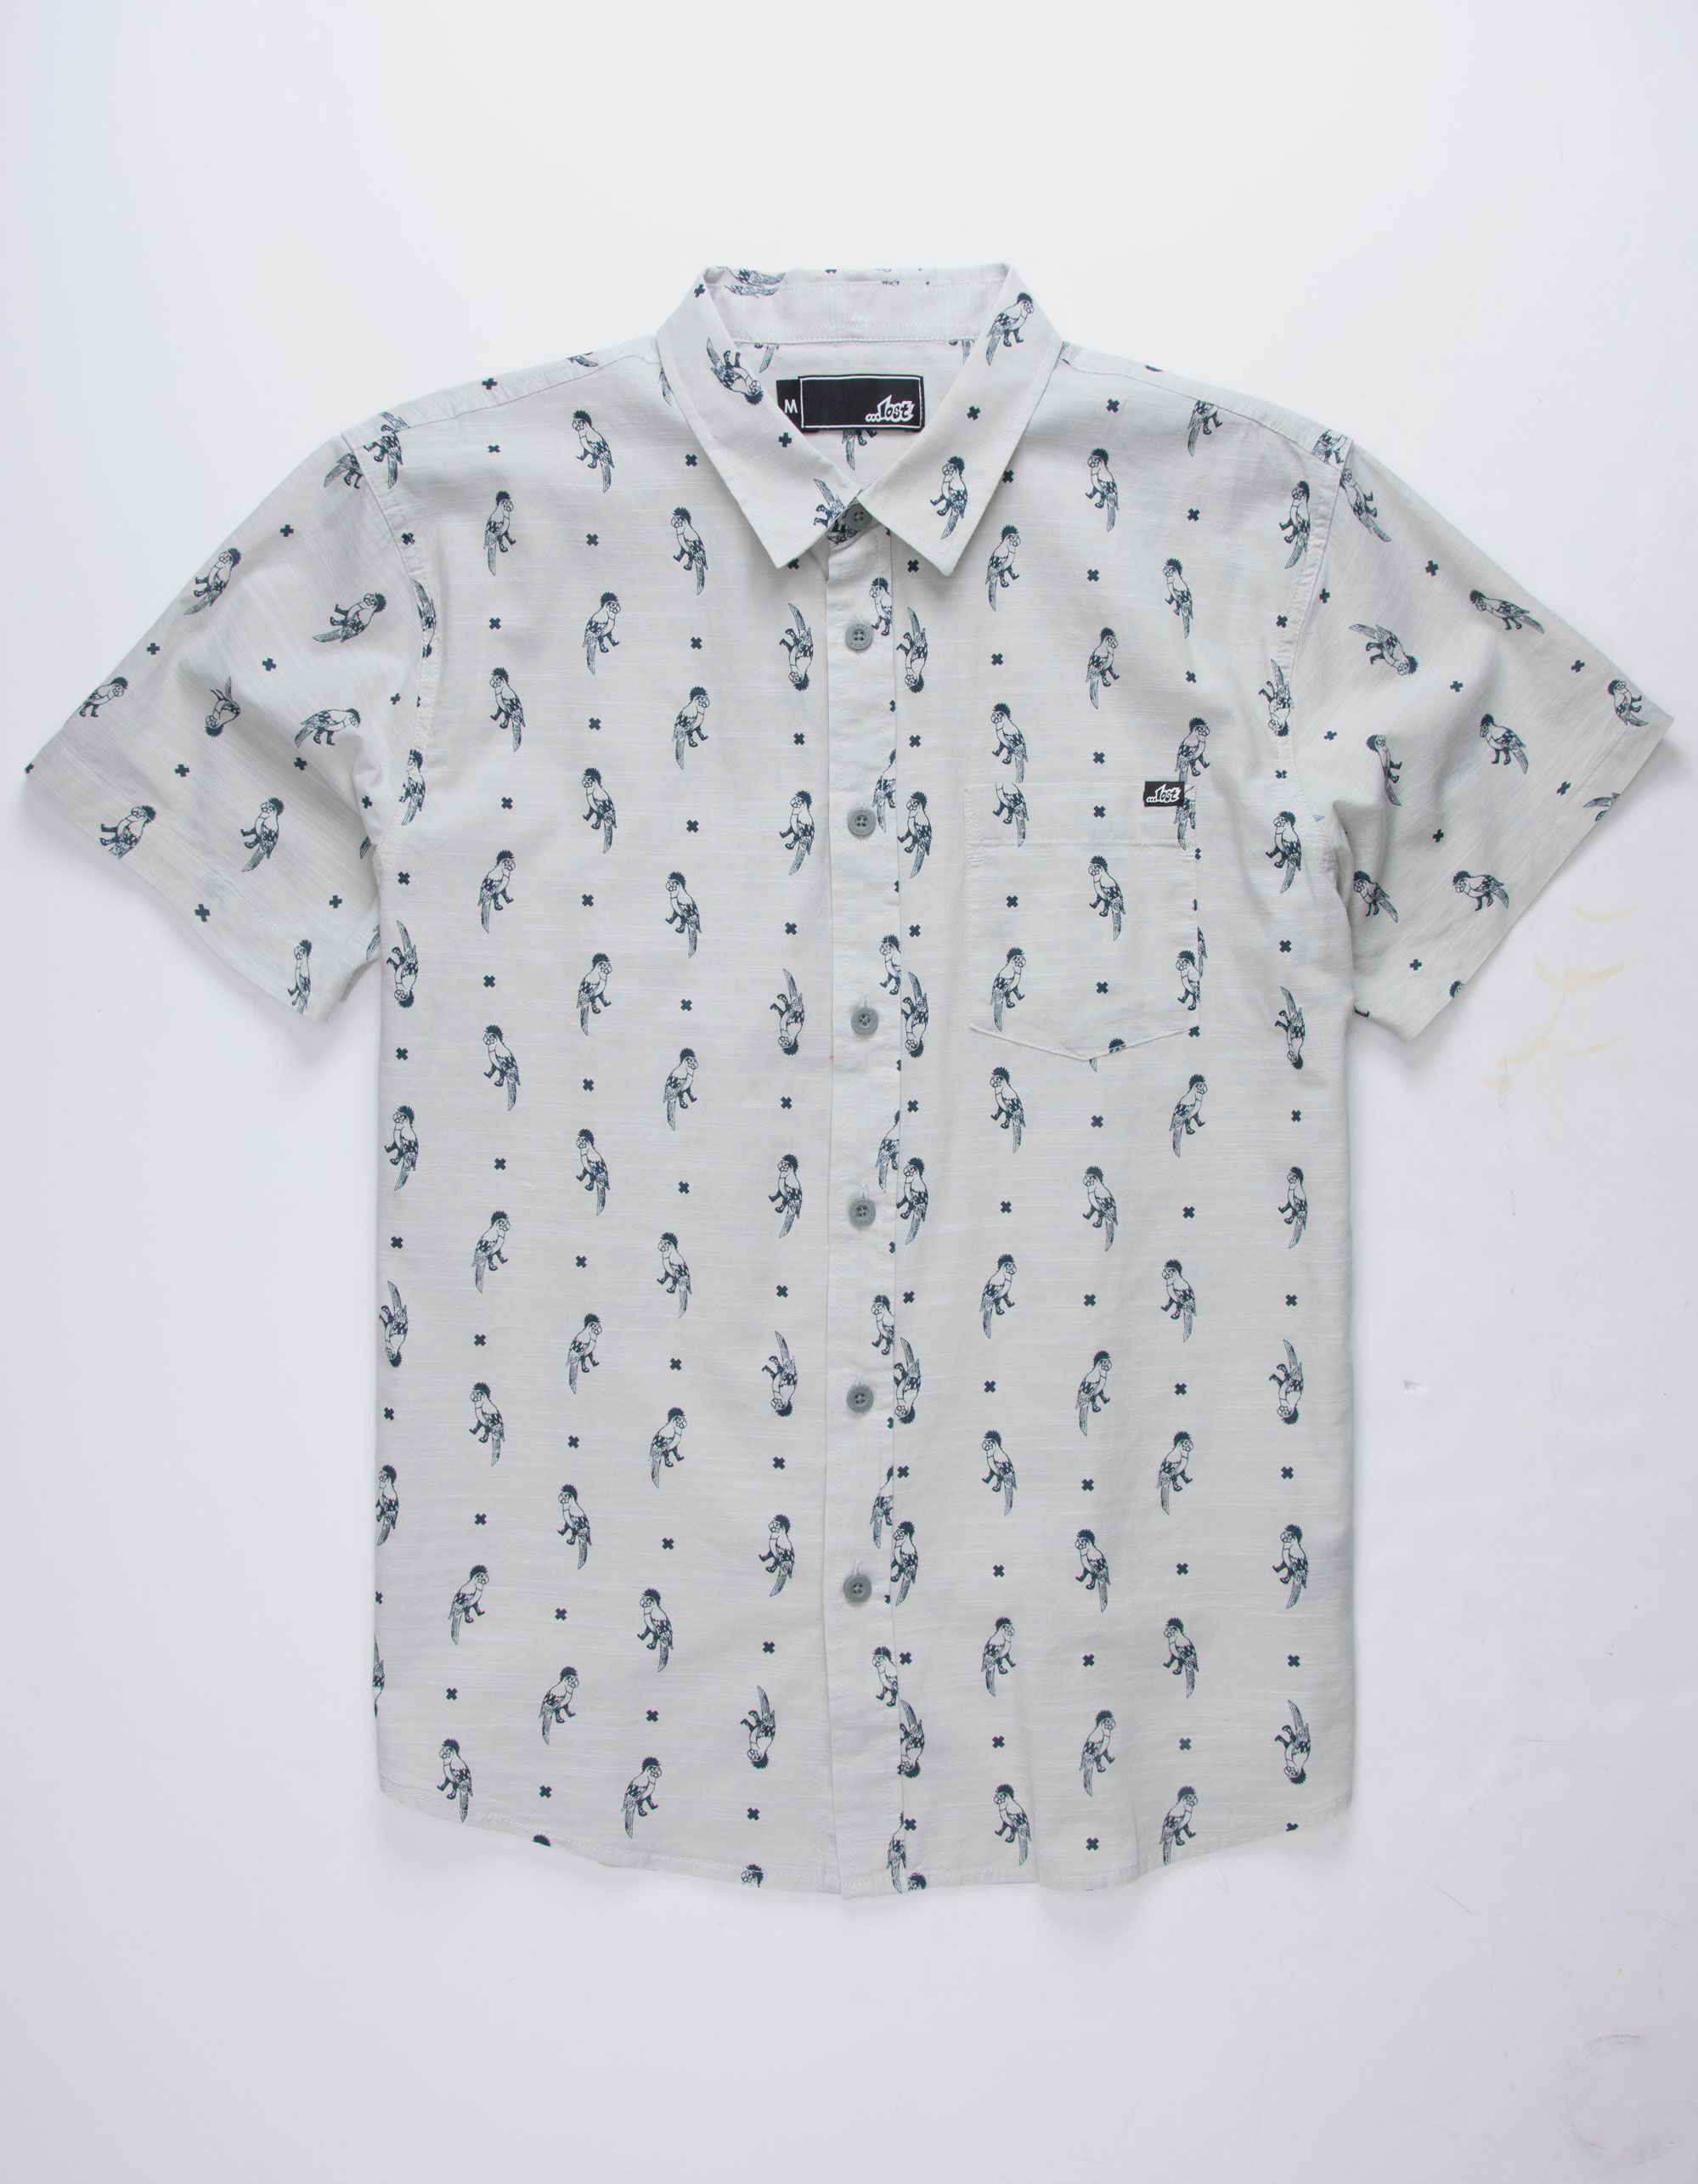 LOST Polly Shirt